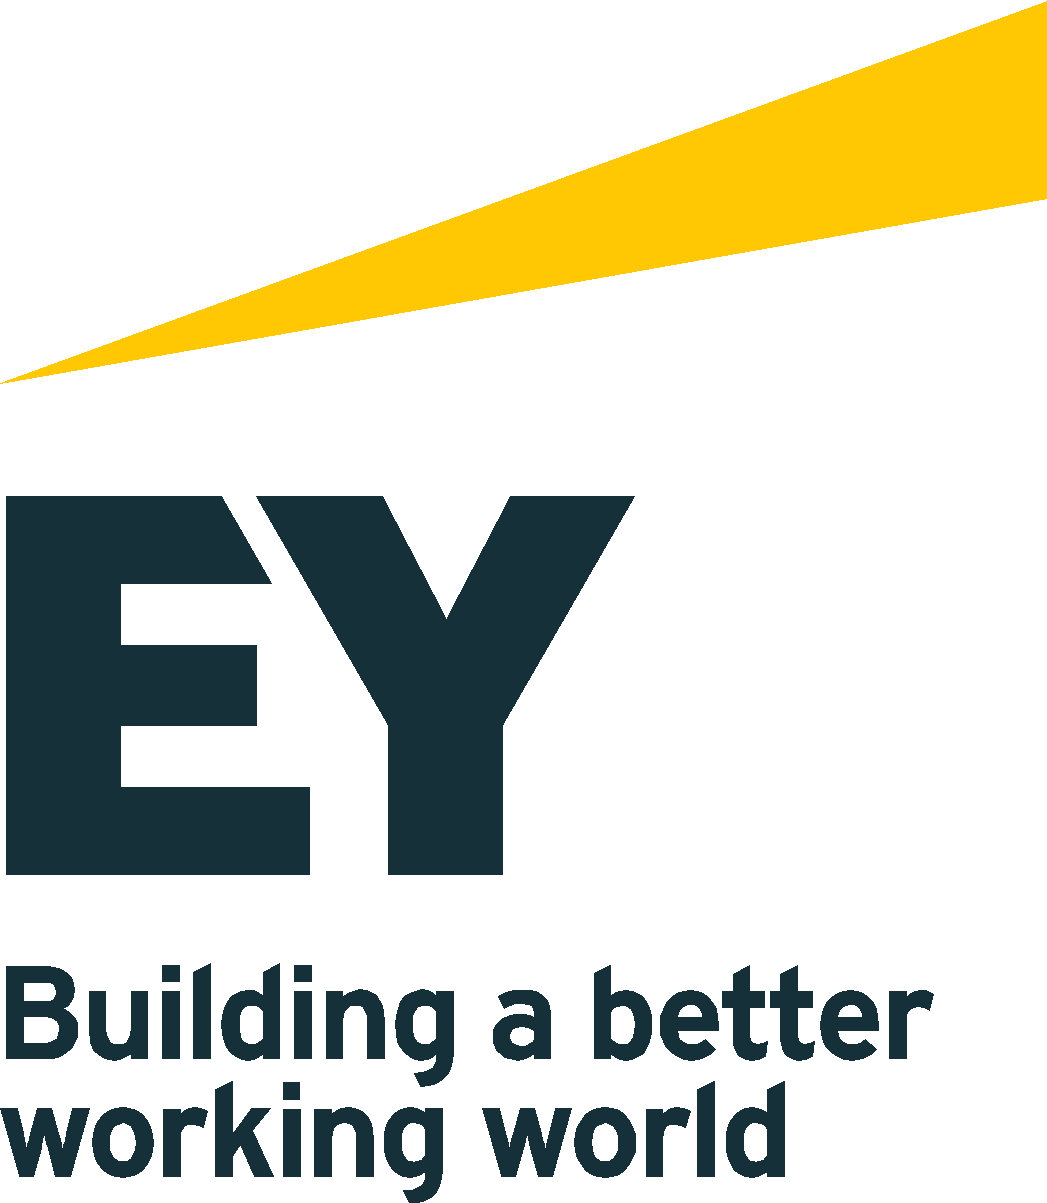 1 Ernst & Young